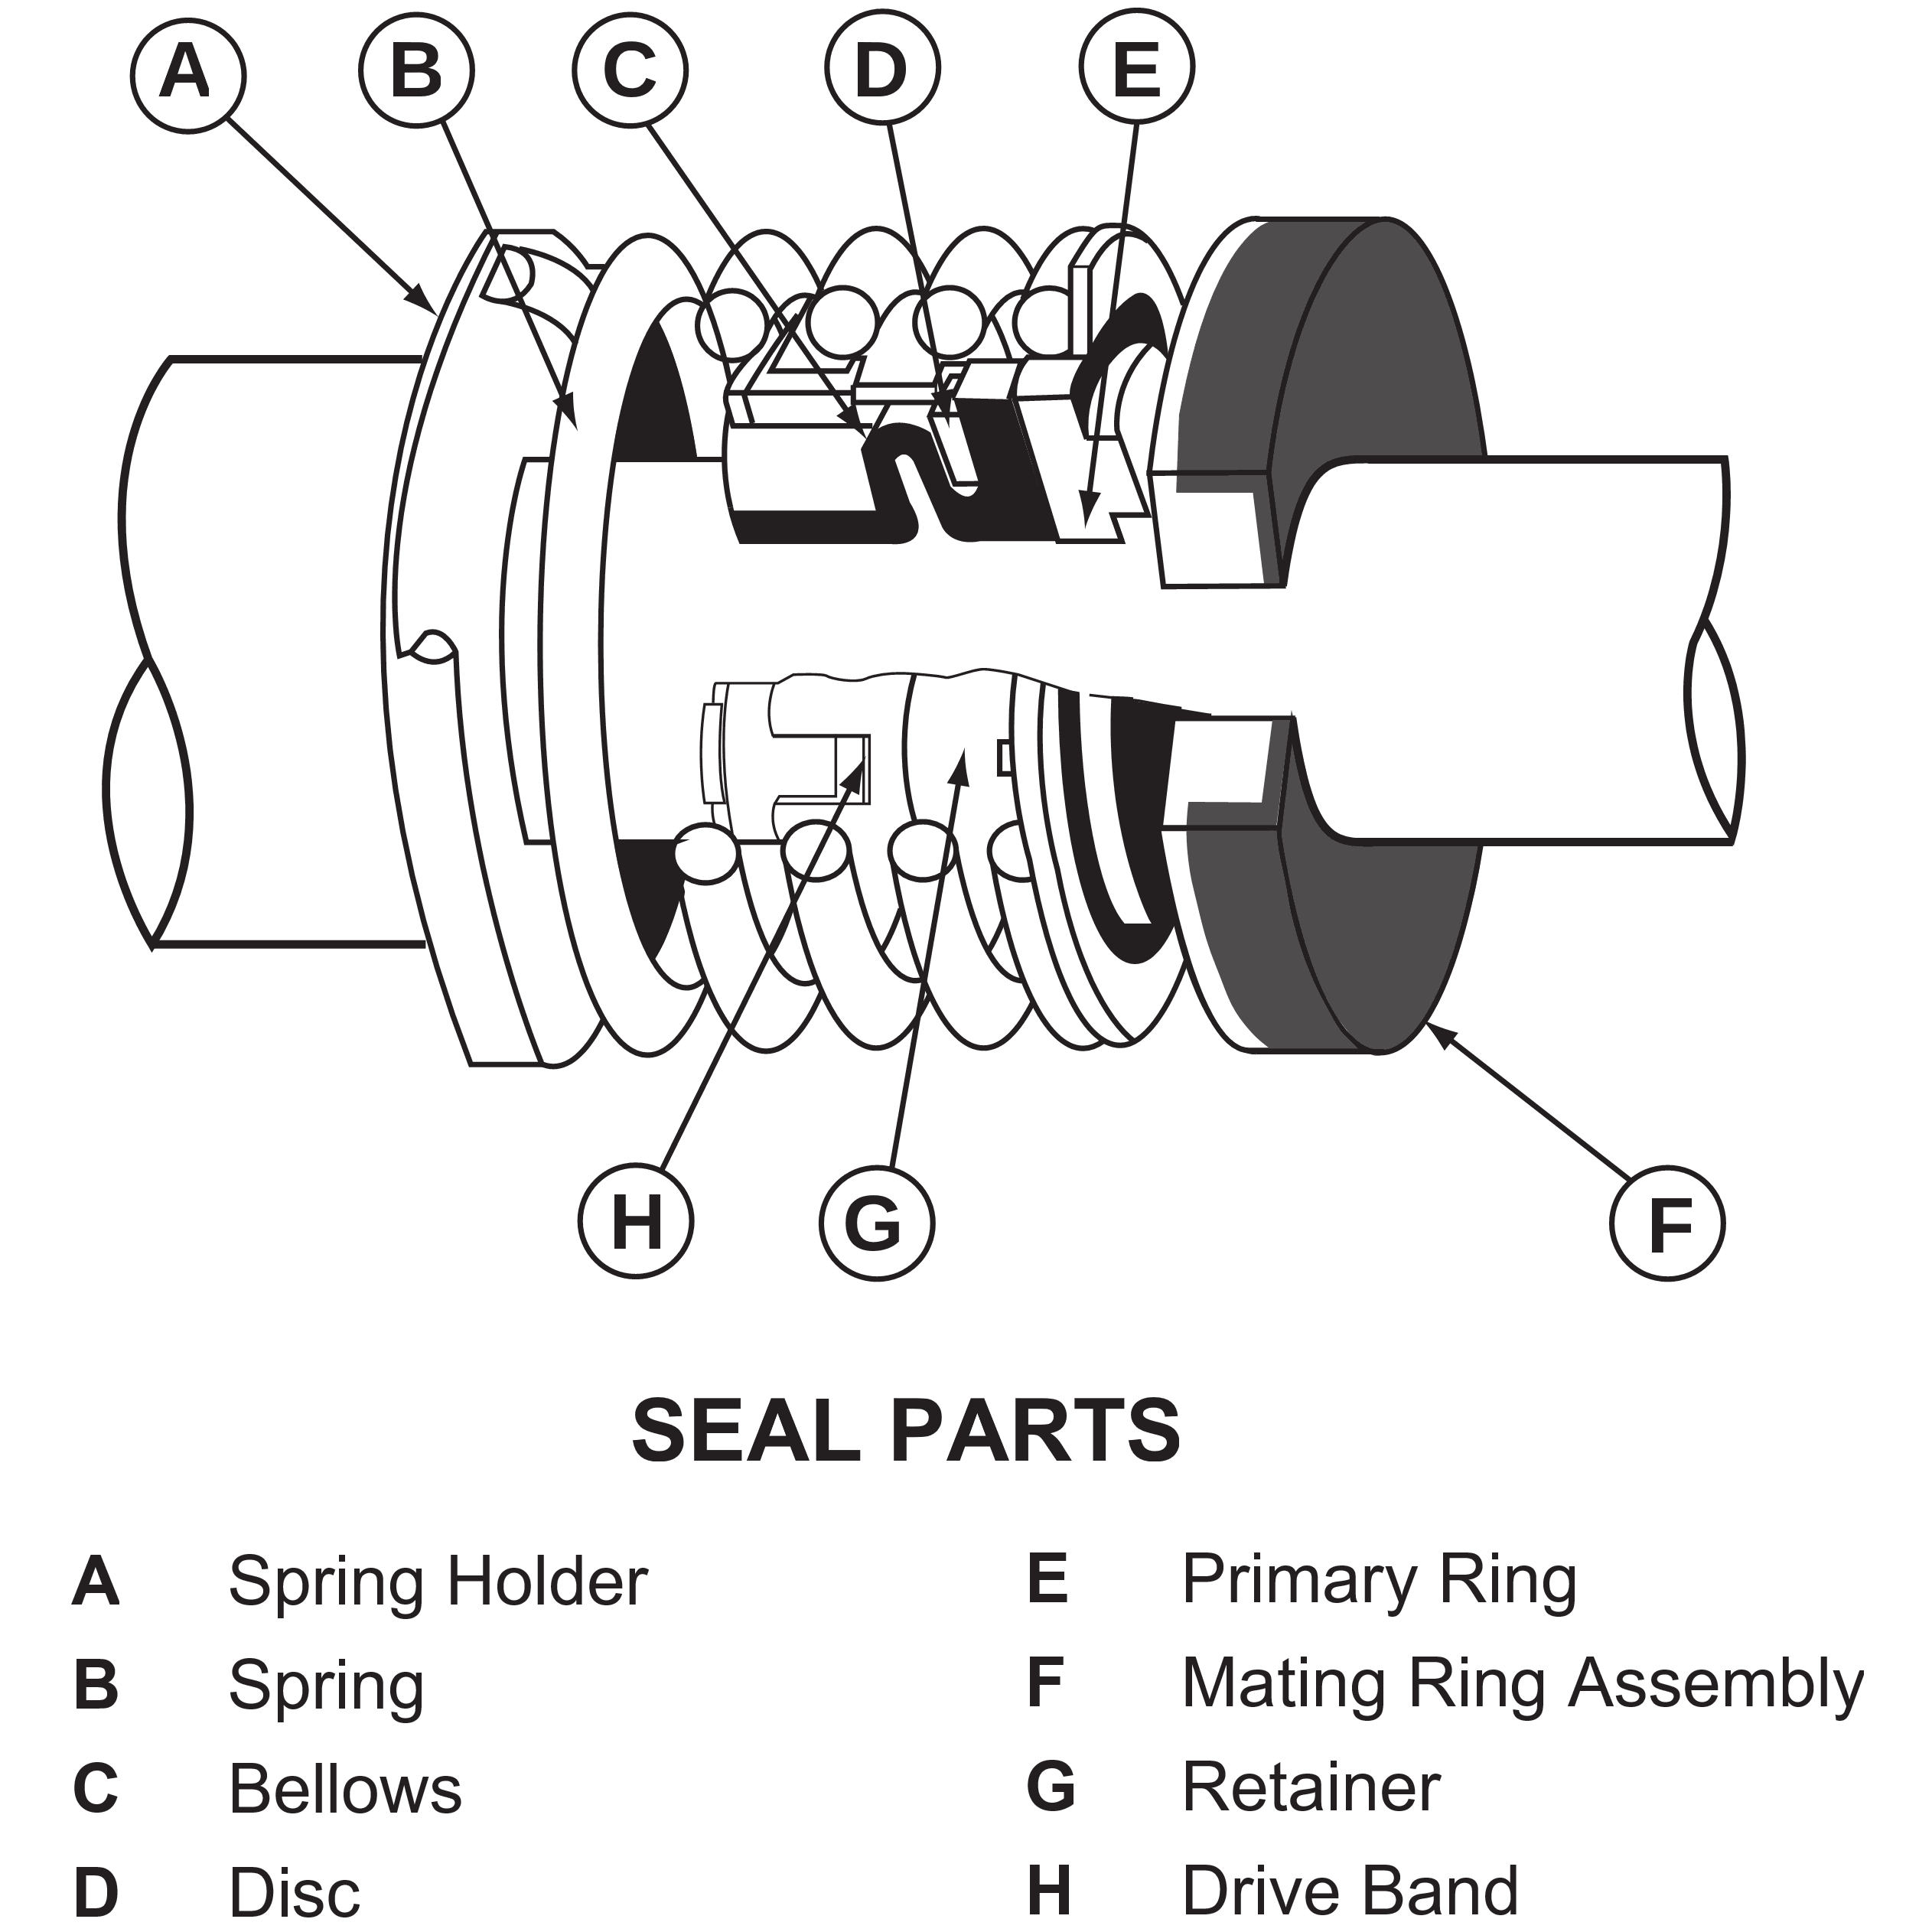 PS-185 U.S. Seal Mfg 1.25' Pump Seal 3